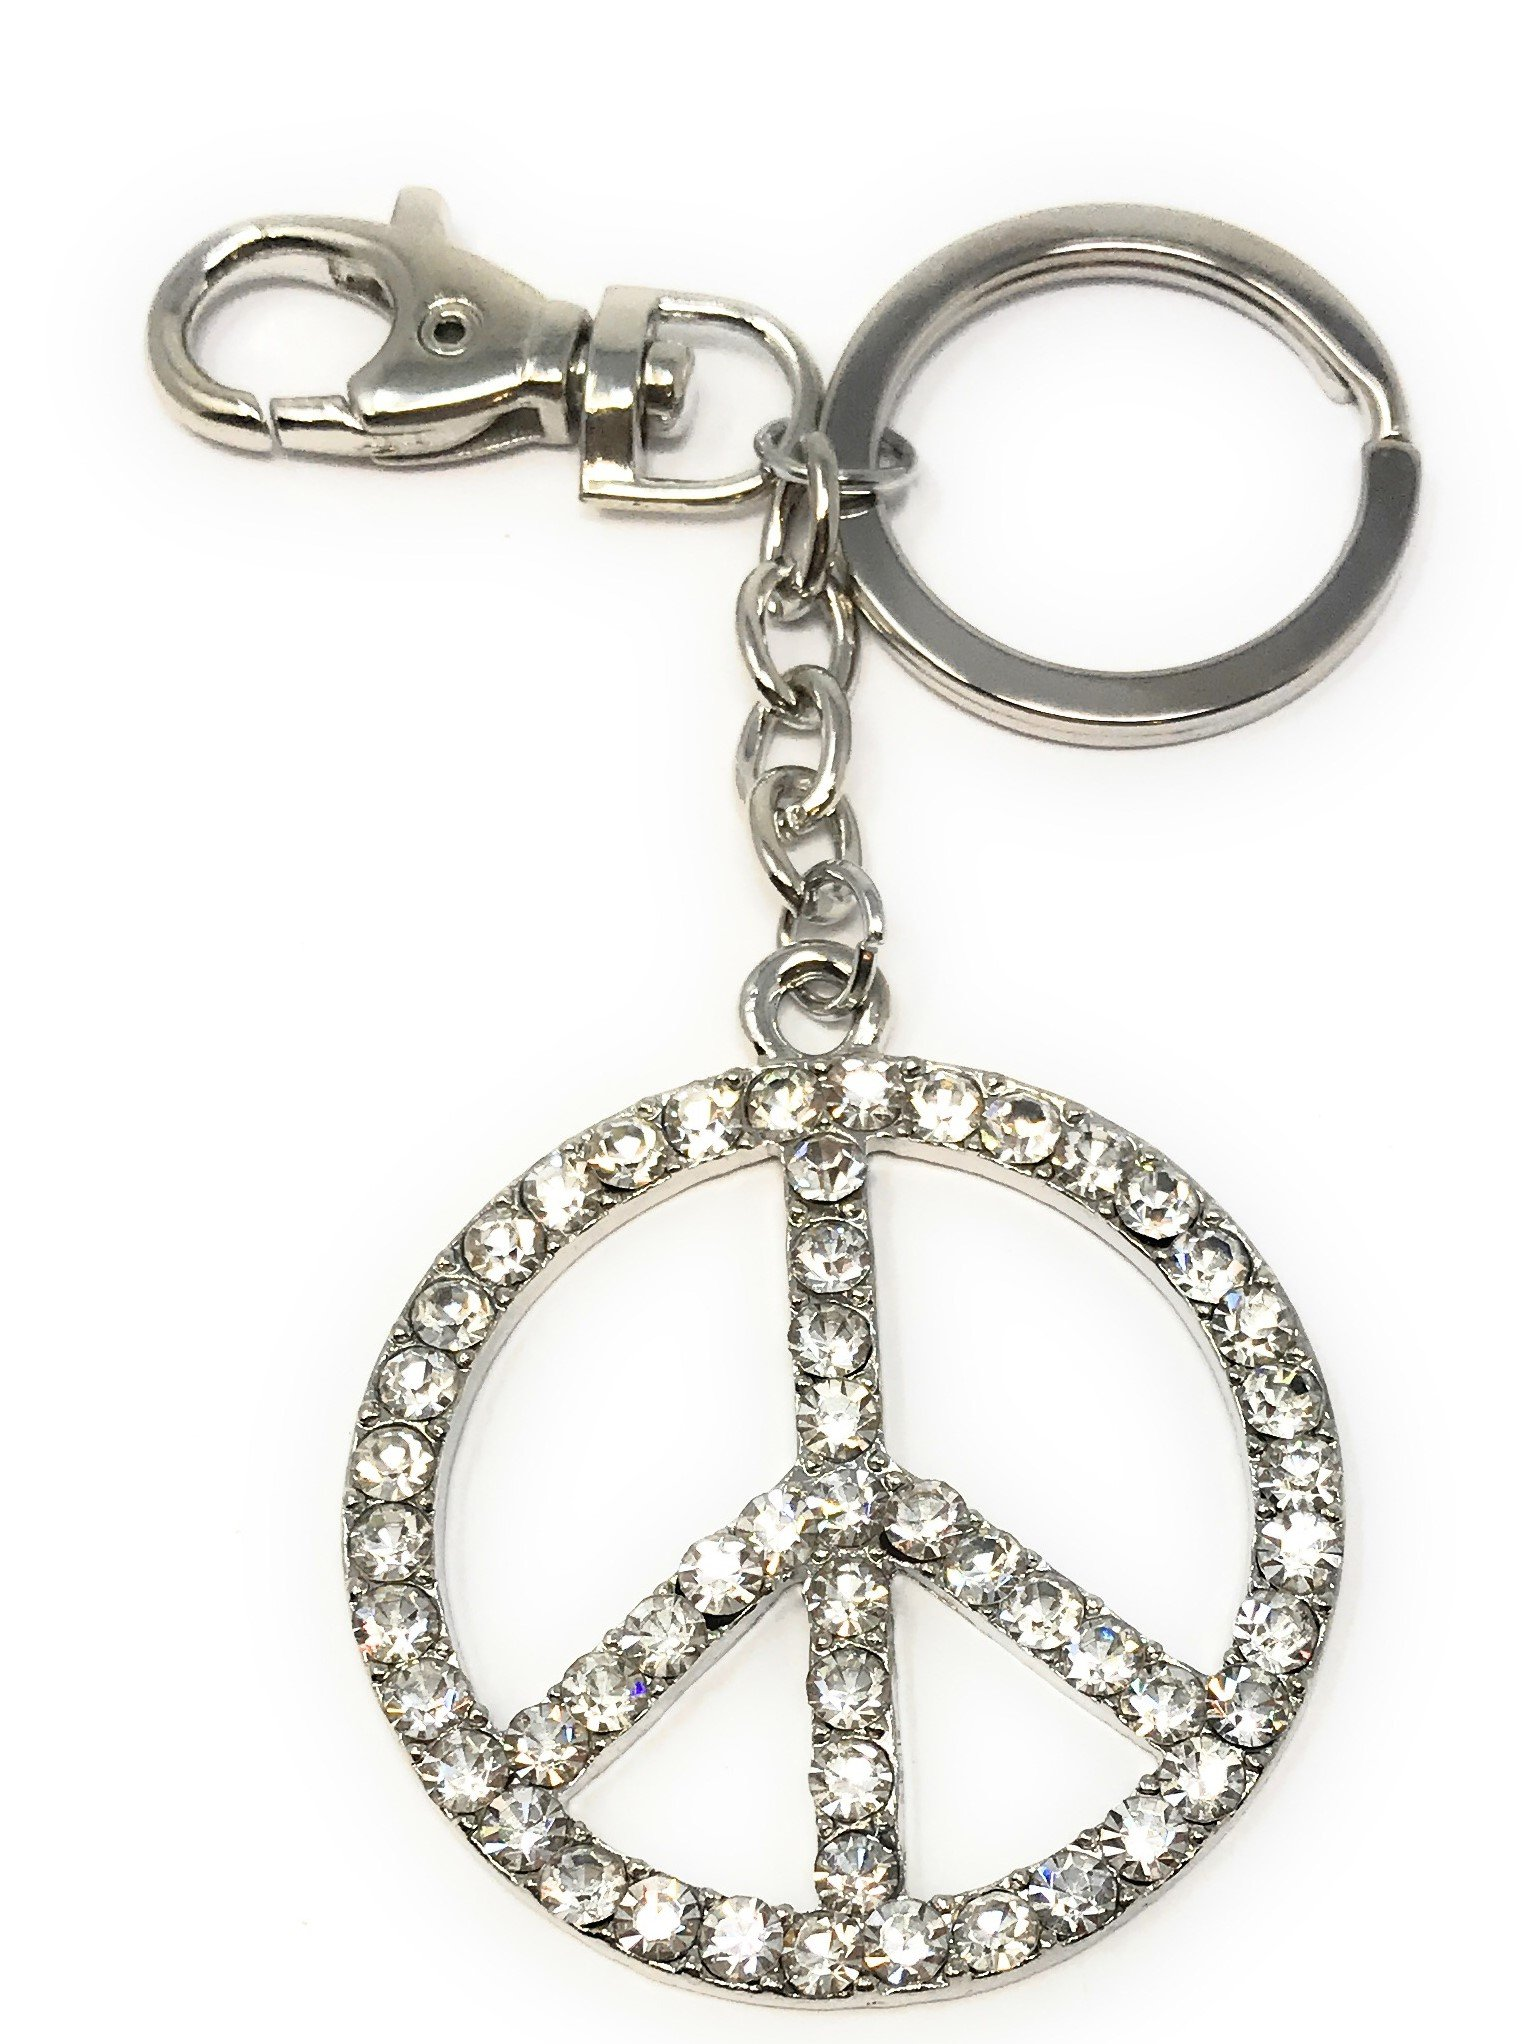 Kubla Craft Bejeweled Peace Sign Key Chain, 5 Inches Long